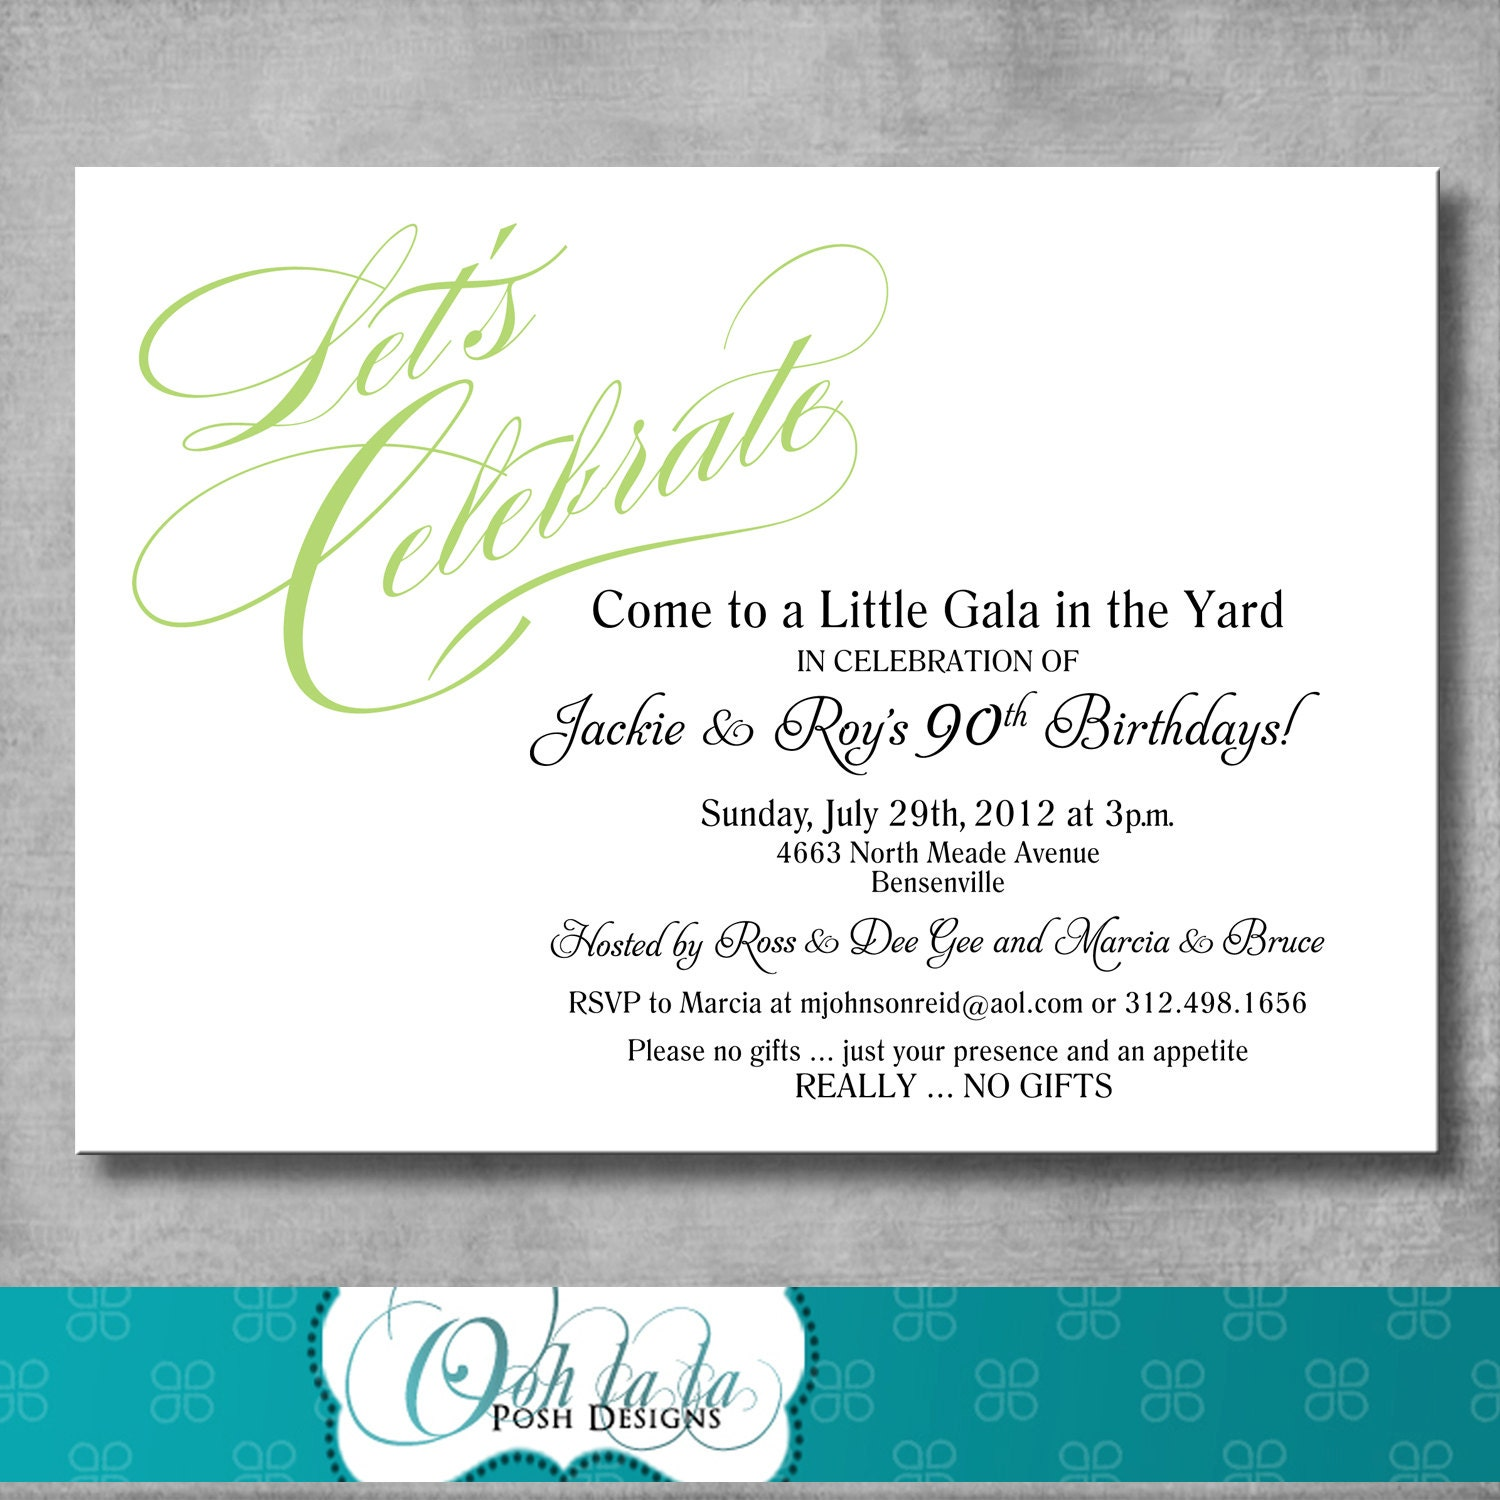 Surprise birthday card invitations goalgoodwinmetals surprise birthday card invitations filmwisefo